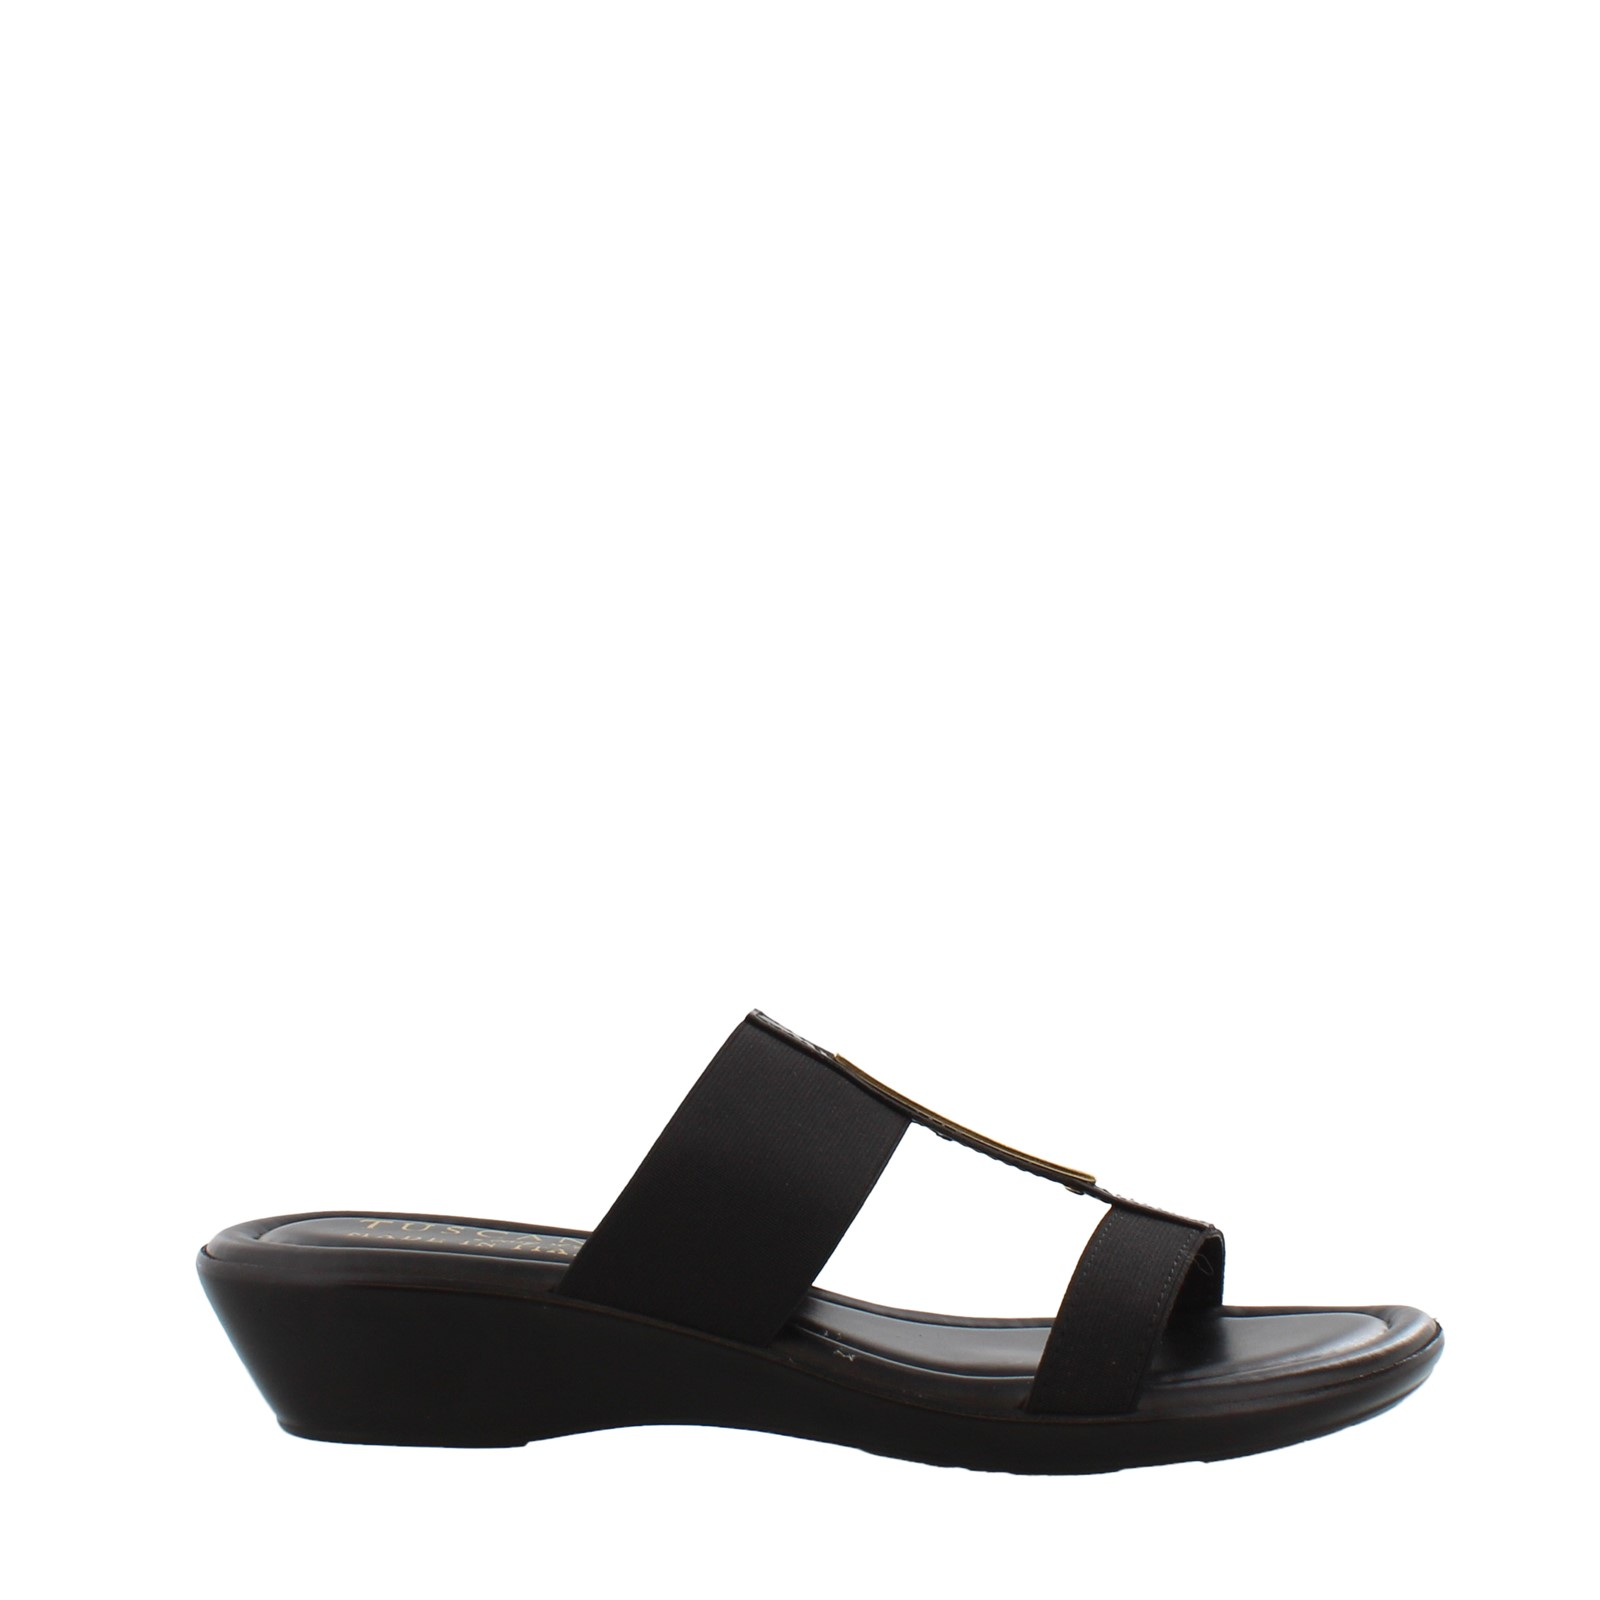 Women's Tuscany by Easy Street, Adda Slide Sandals